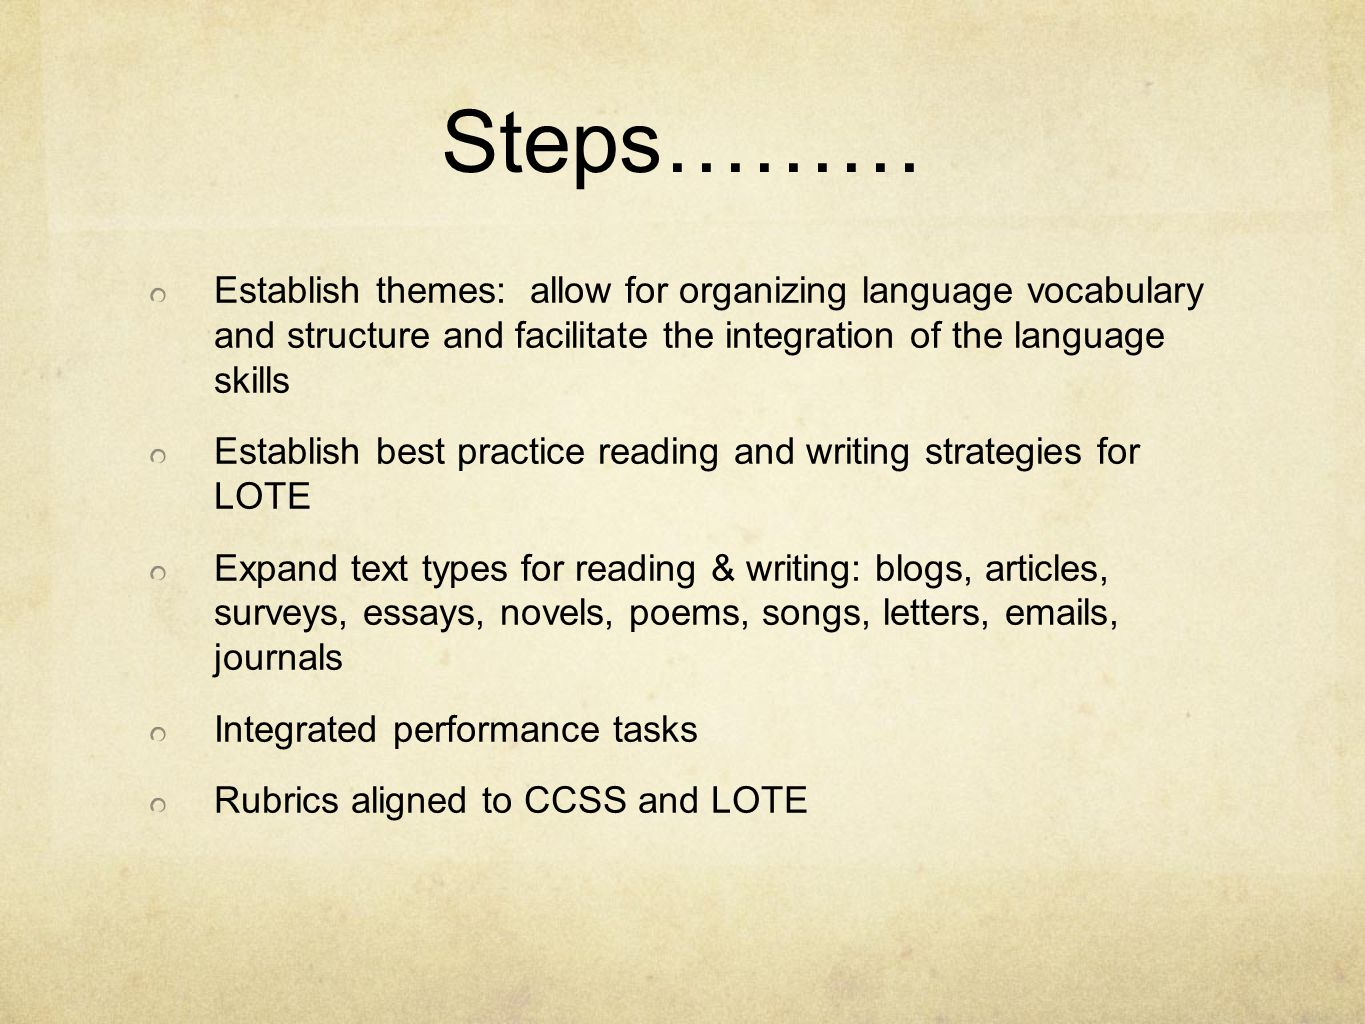 Steps……… Establish themes: allow for organizing language vocabulary and structure and facilitate the integration of the language skills Establish best practice reading and writing strategies for LOTE Expand text types for reading & writing: blogs, articles, surveys, essays, novels, poems, songs, letters, emails, journals Integrated performance tasks Rubrics aligned to CCSS and LOTE